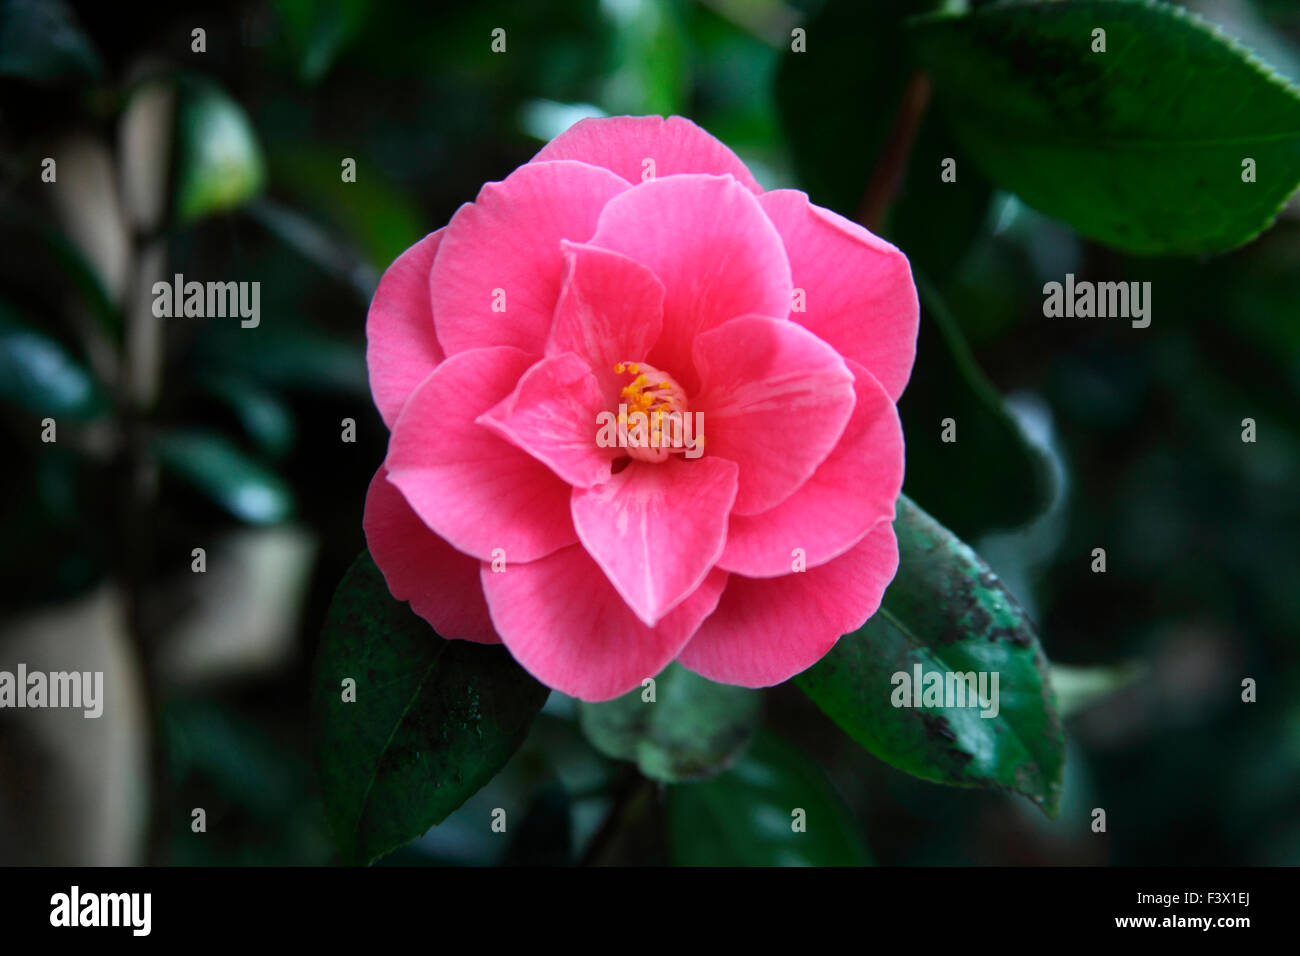 Camellia 'High wide n handsome' close up of flower - Stock Image